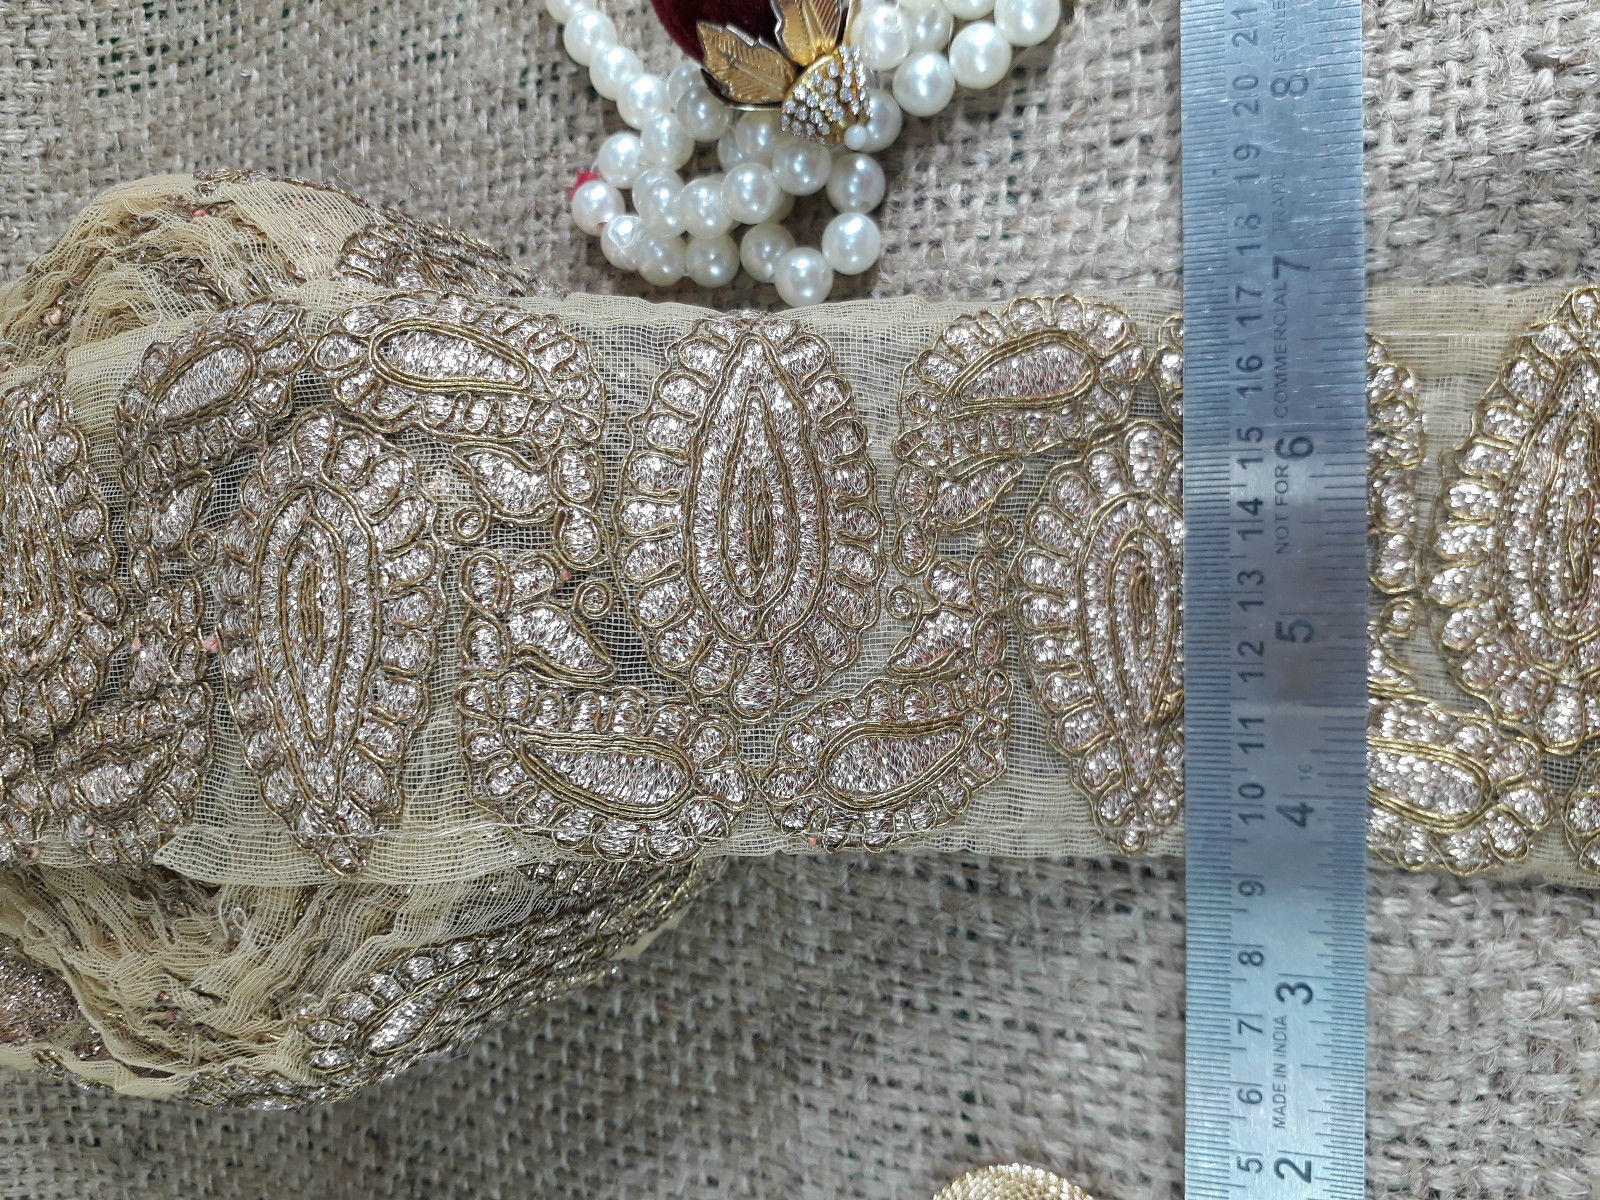 beaded applique trim lace fabric wholesale Cream Gold, Torquoise Blueream Embroidery n Sequins Net Less than 2 inch